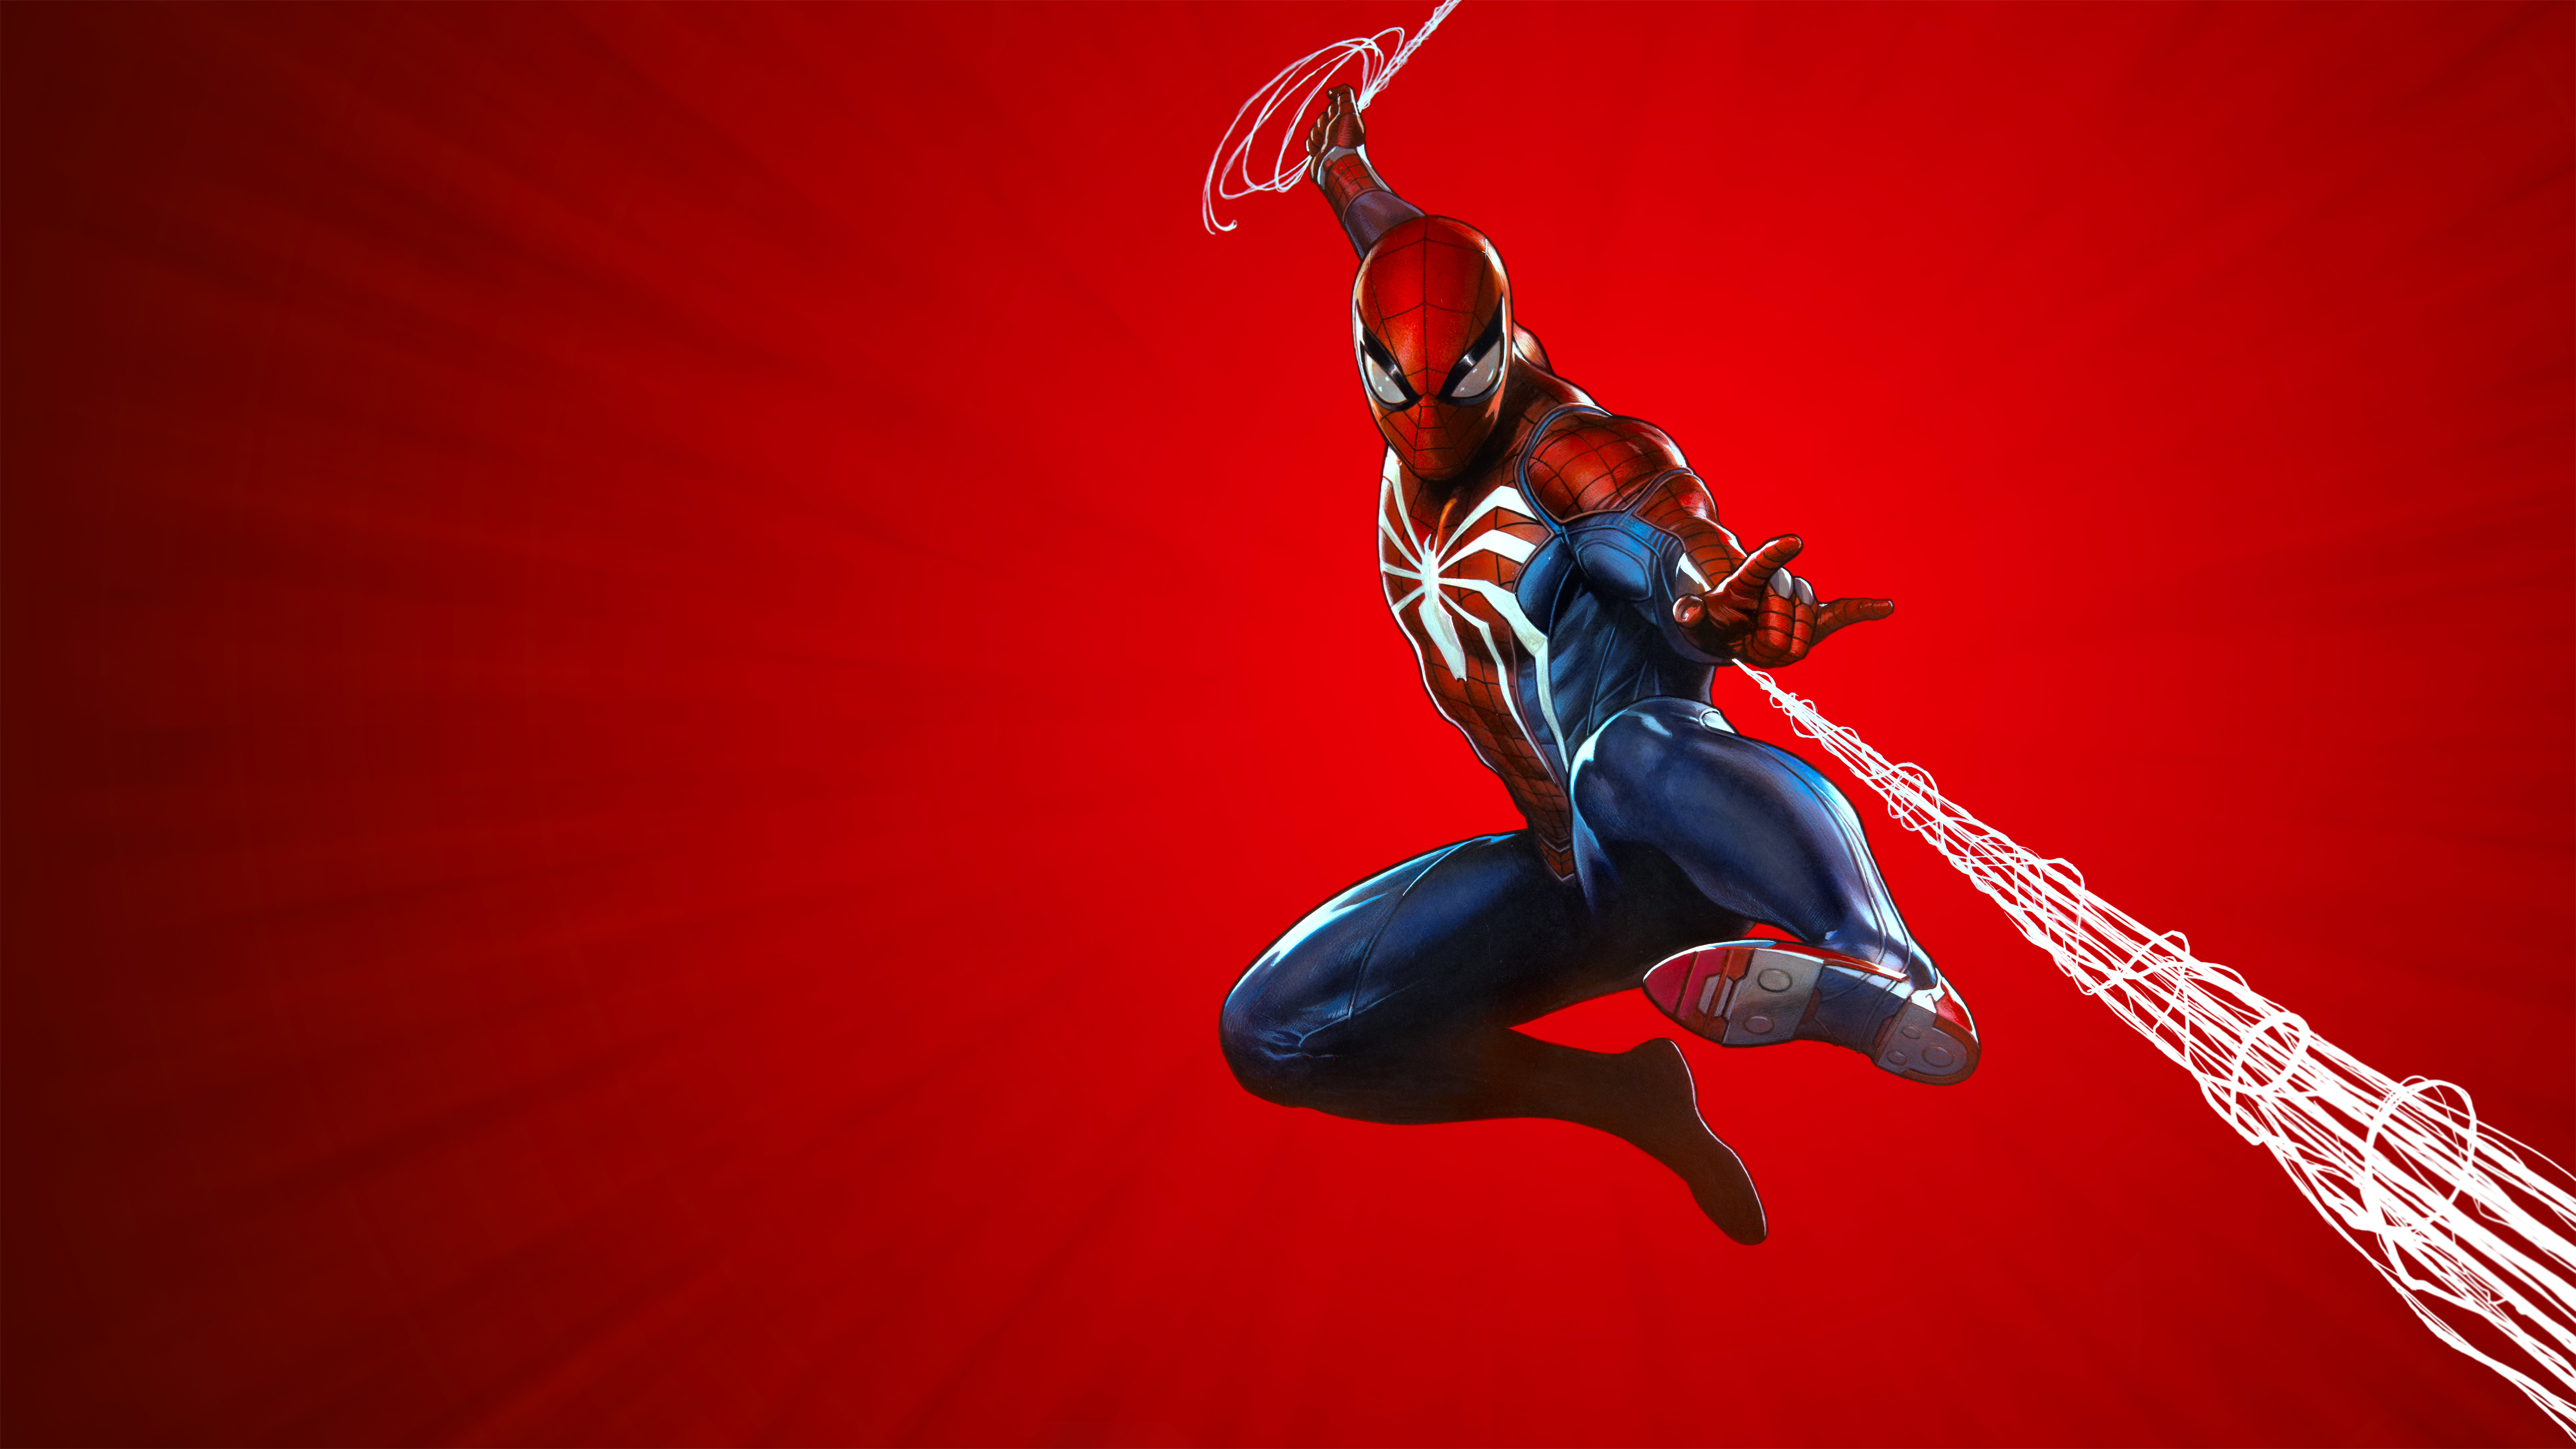 Spider Man Ps4 Wallpaper Hd Games 4k Wallpapers Images Photos And Background